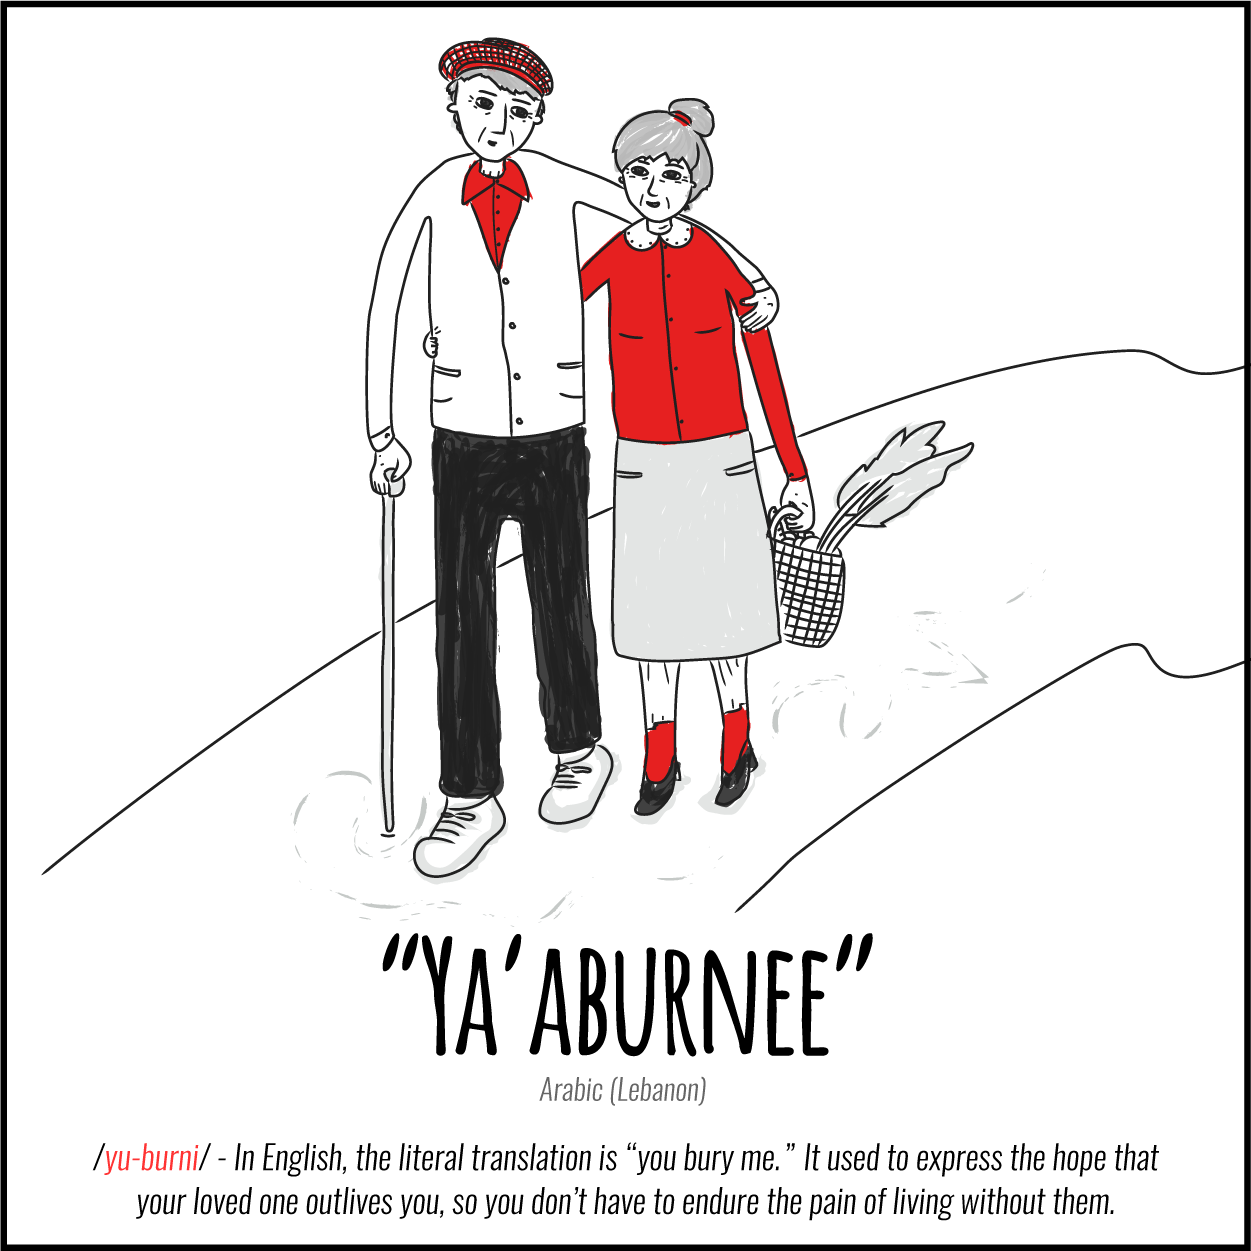 "Illustration: Untranslatable Words about love, Ya'aburnee (Arabic, Lebanon) In English, the literal translation is ""you bury me."" Its used to express the hope that your loved one outlives you, so you don't have to endure the pain of living without them."